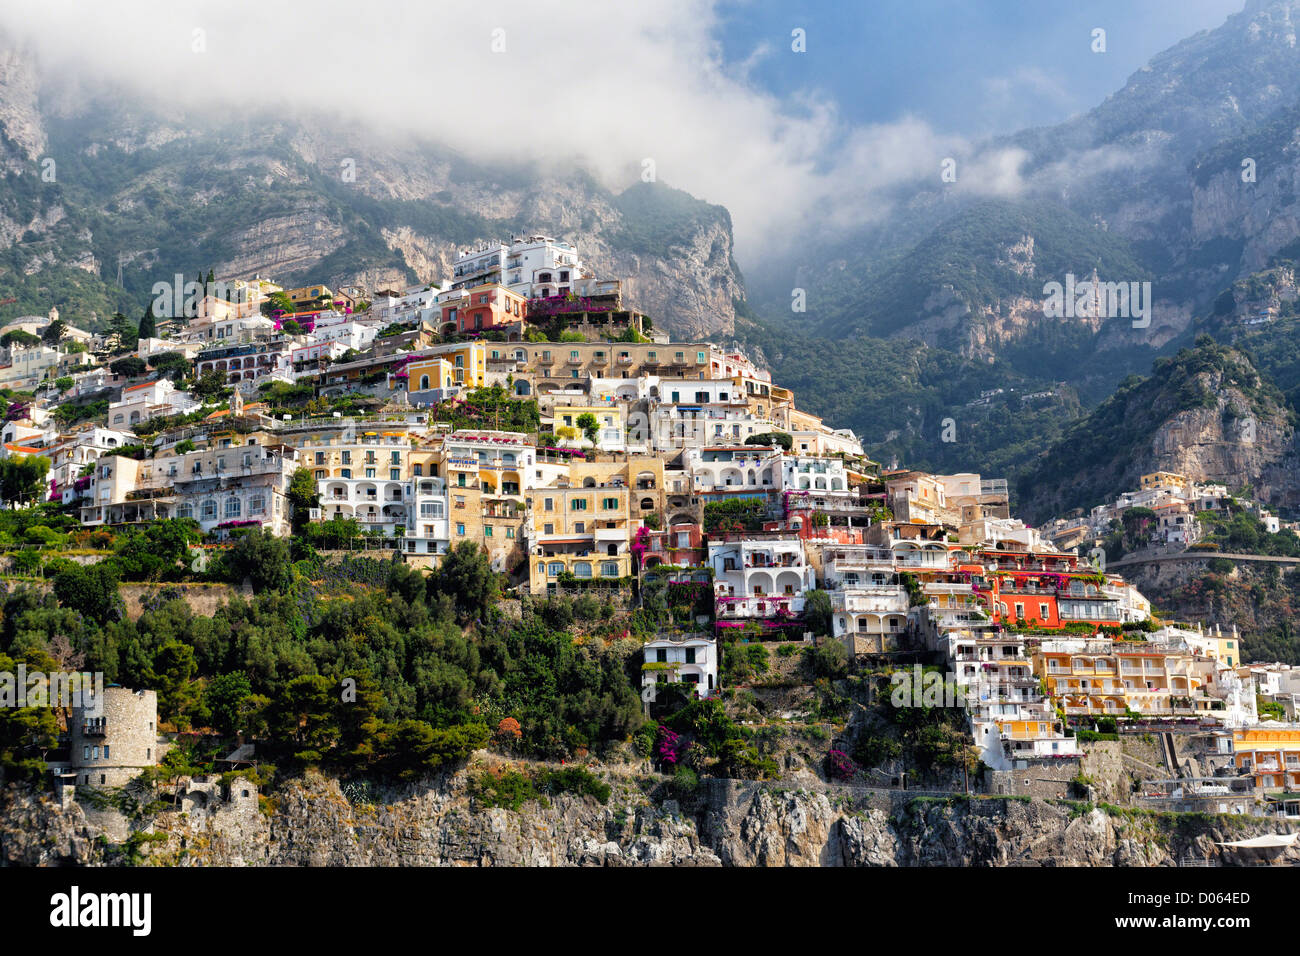 Low Angle View of Houses Bulit on a Hillside, Positano, Campania, Italy - Stock Image